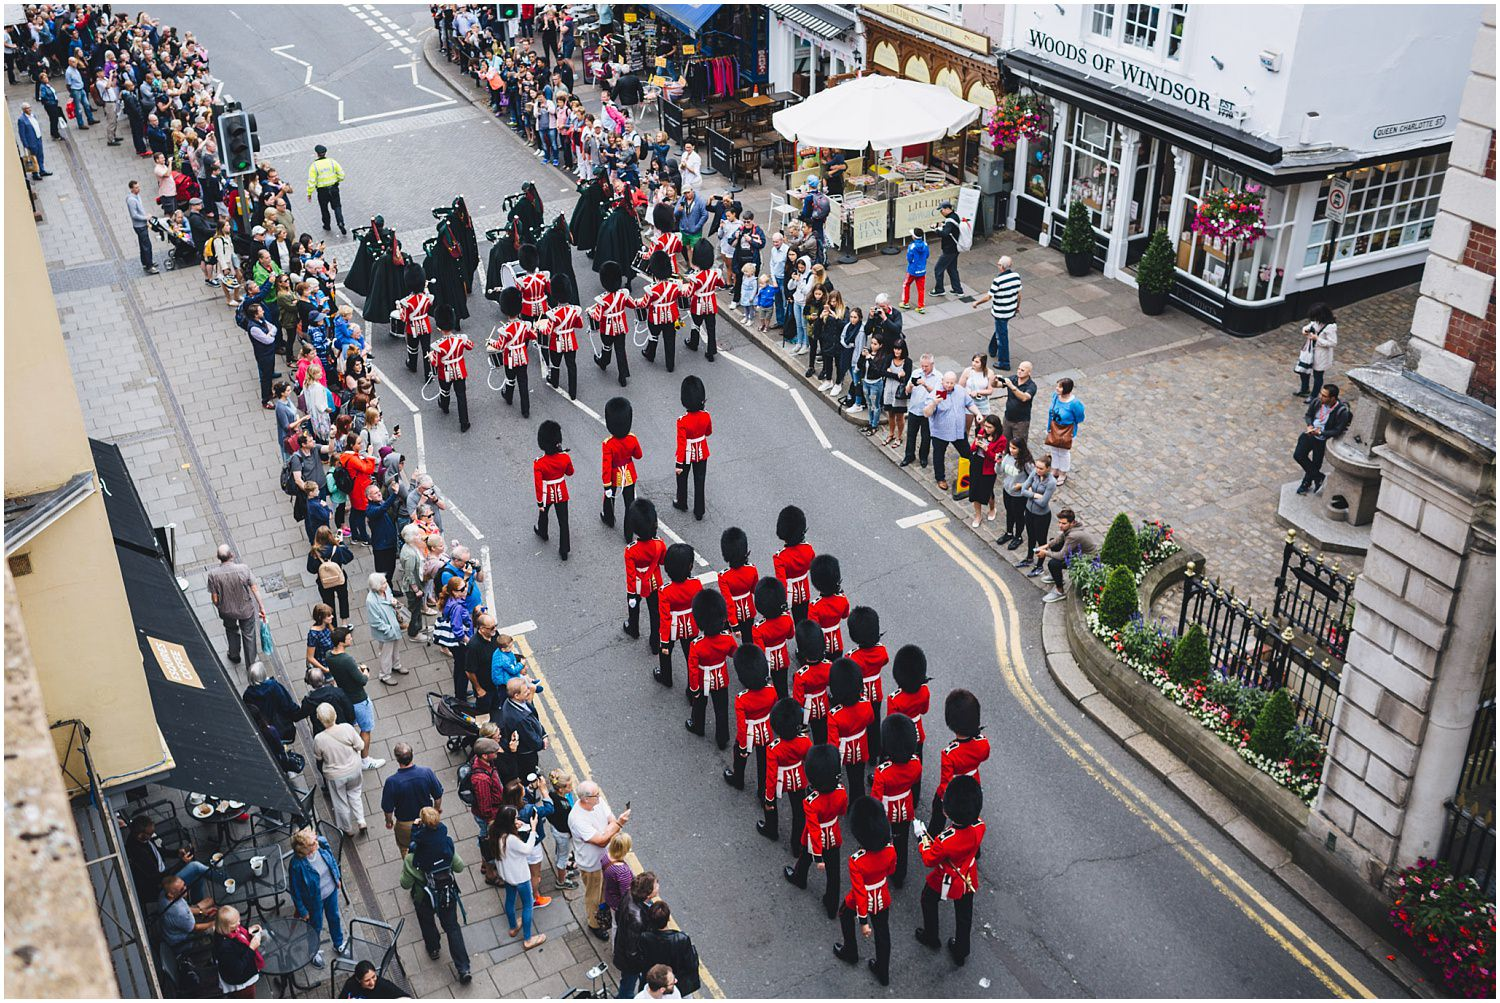 Windsor wedding. Changing of the guards in Windsor seen from the balcony of the MacDonald Windsor hotel